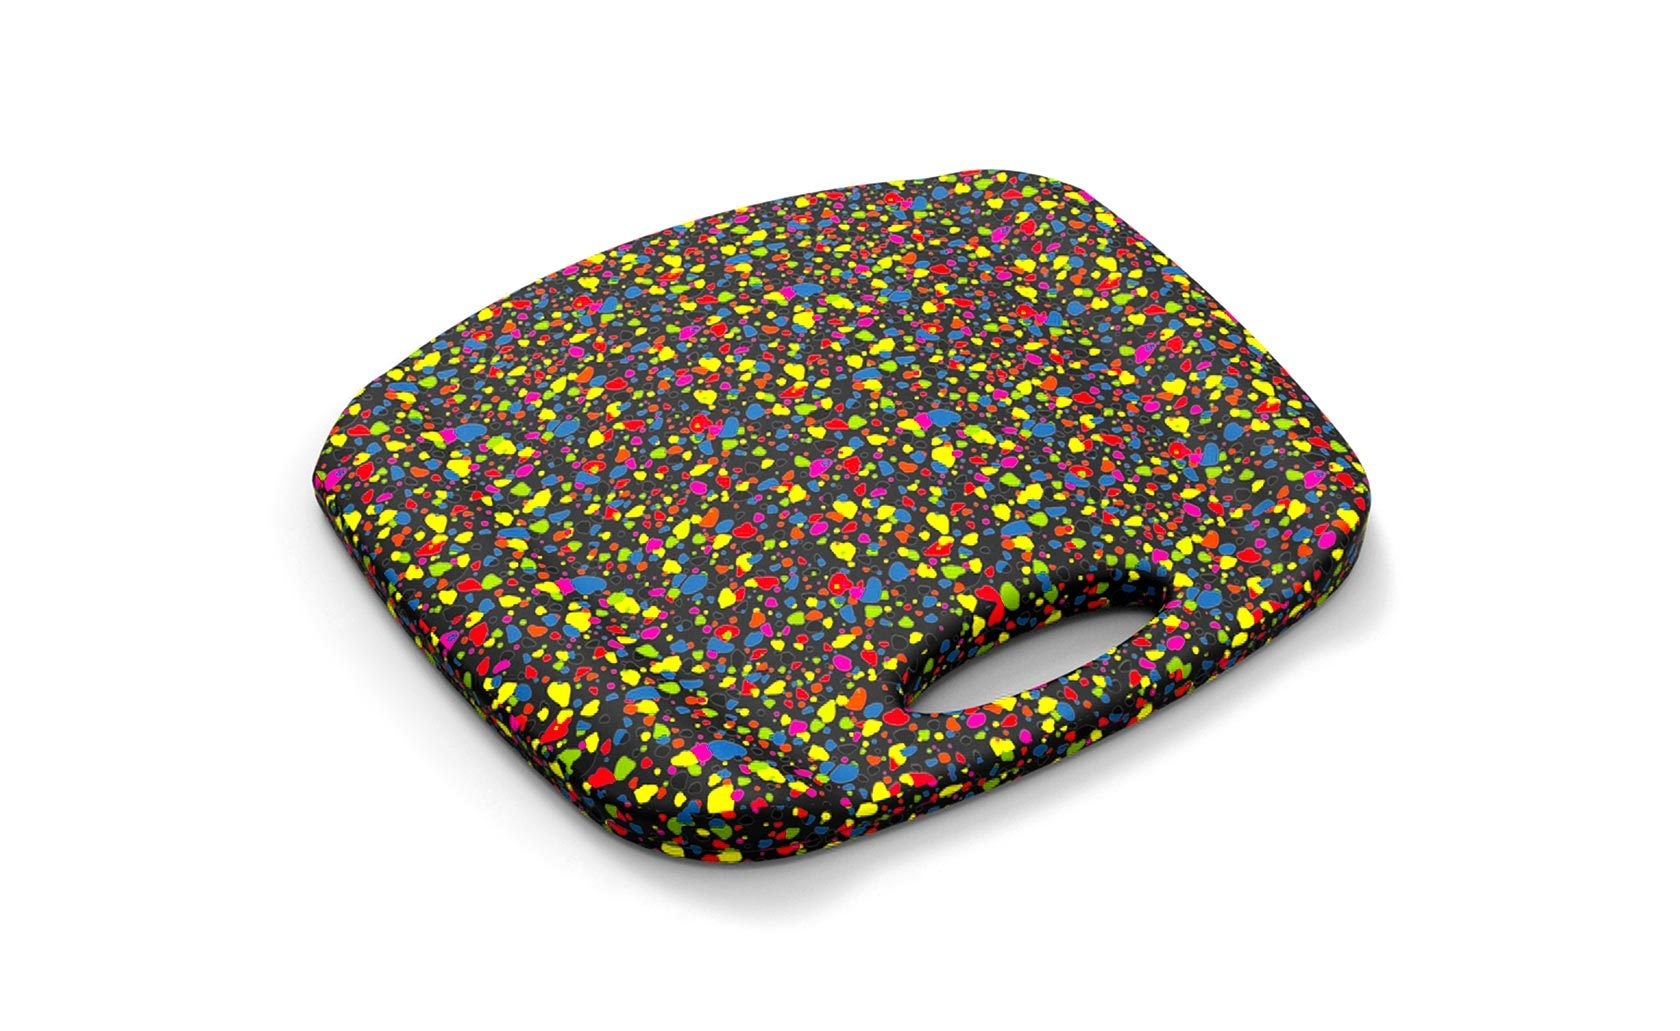 RECOVER Cushion Design by Furia and Kevin Meric